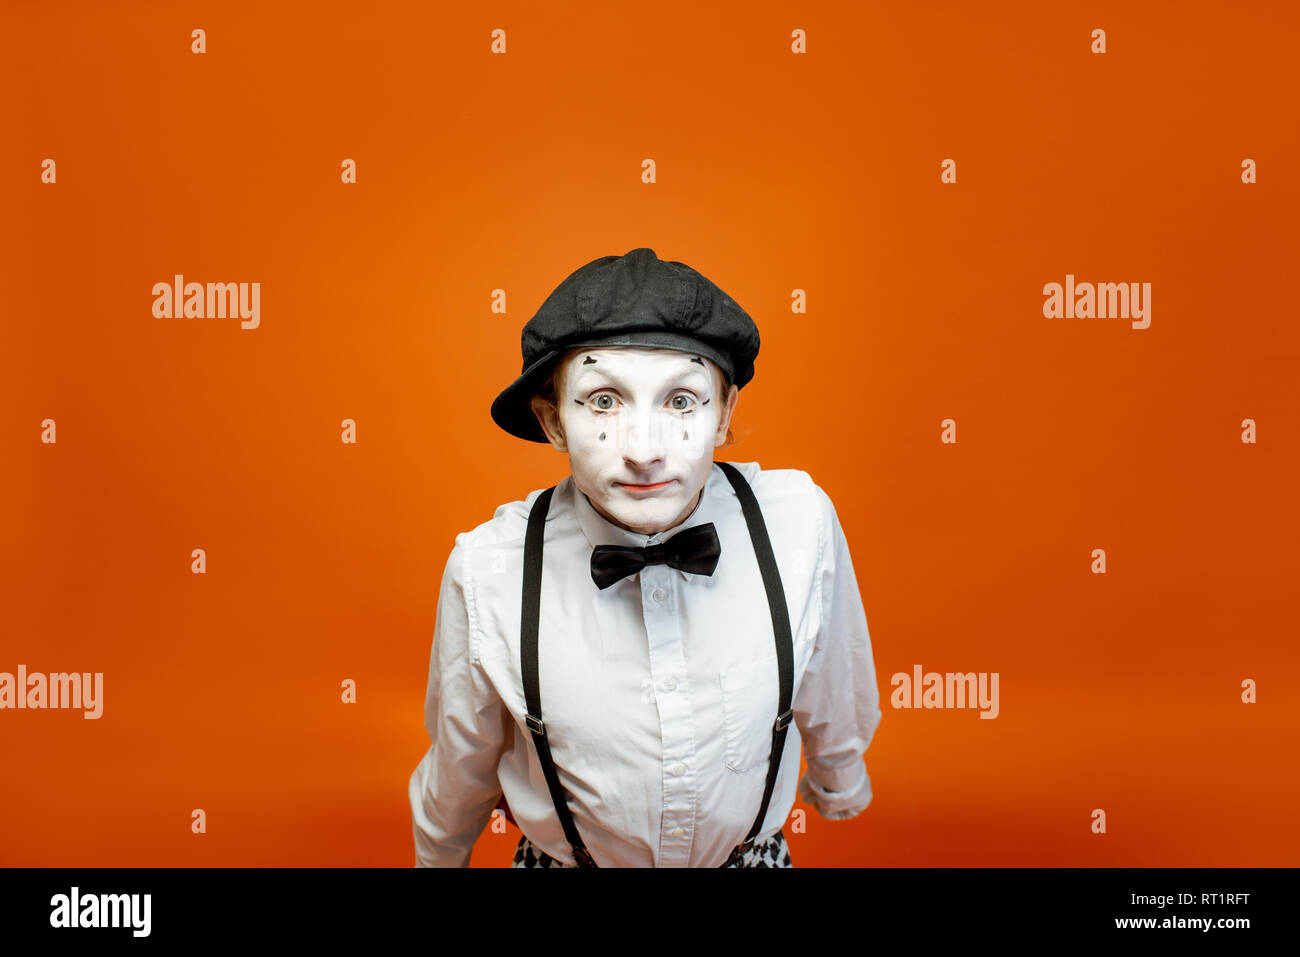 Portrait of an actor as a pantomime with white facial makeup showing expressive emotions on the orange background in the studio - Stock Image